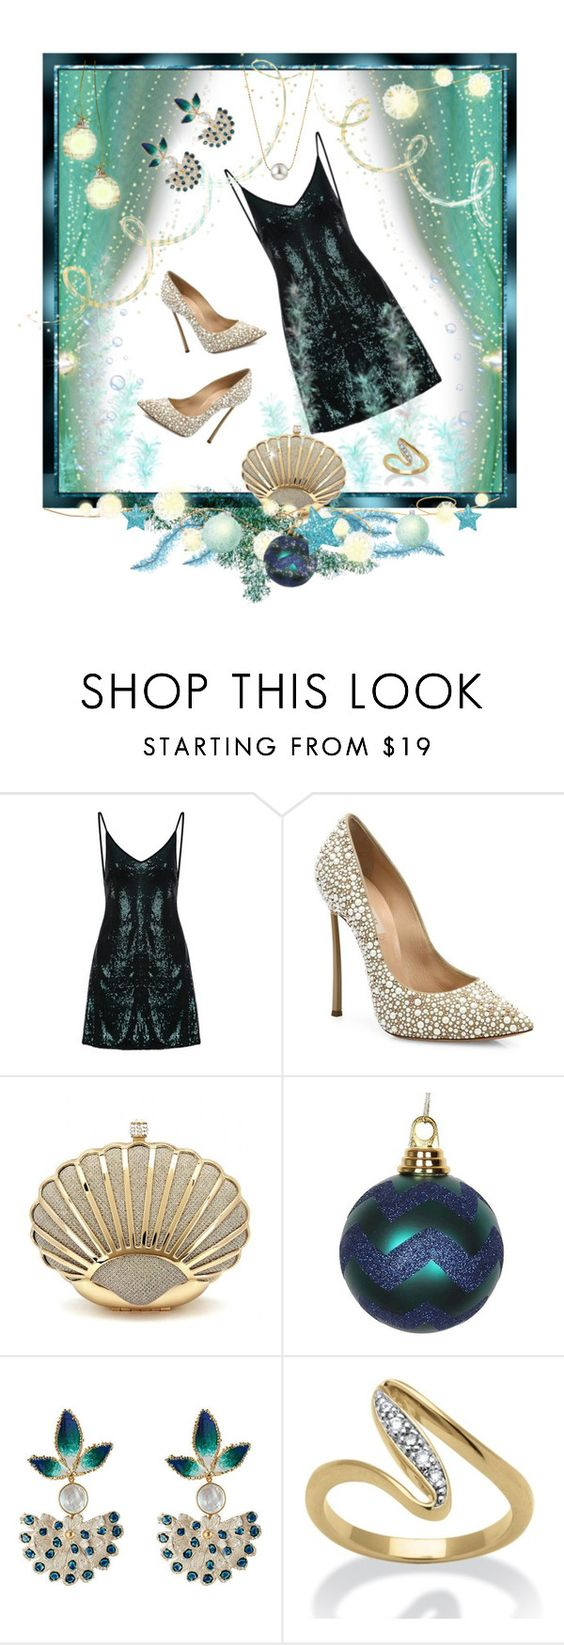 """Sea Fairies' Party"" by valeria-mezhevikina ❤ liked on Polyvore featuring Casadei, Gas Bijoux, Palm Beach Jewelry and partydress"